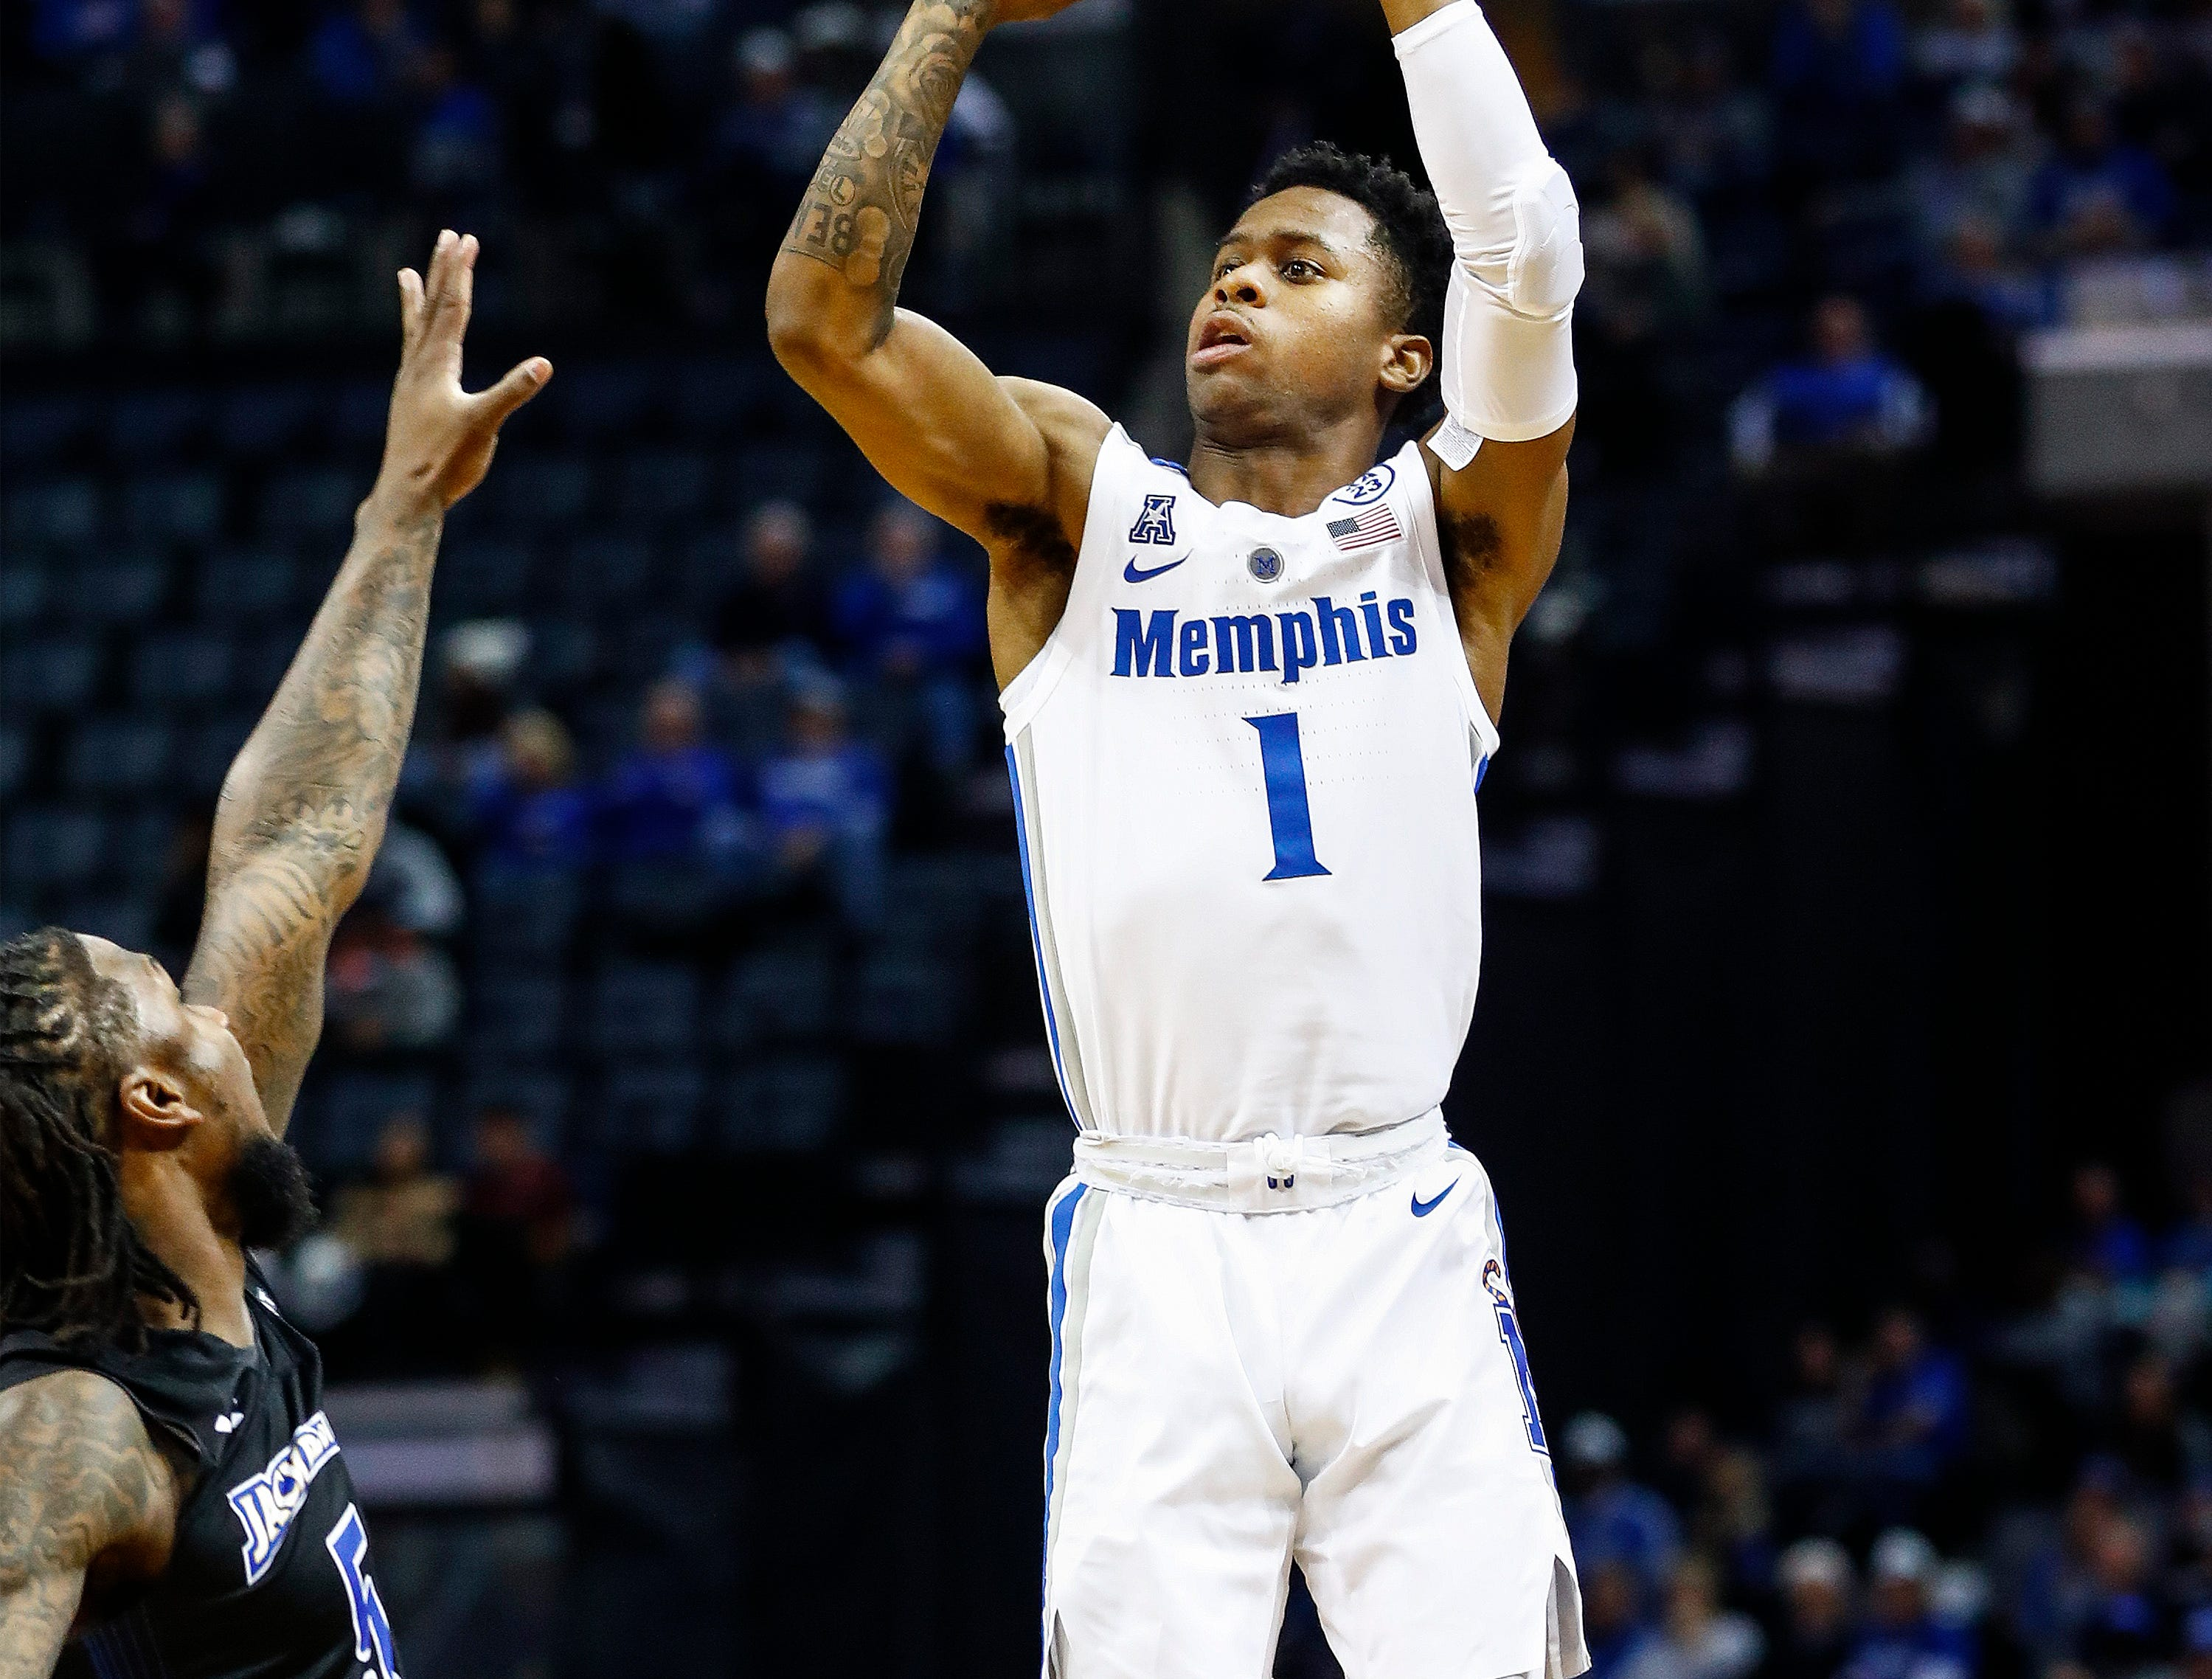 Memphis guard Tyler Harris hits a 3-pointer against the South Dakota State defense during action at the FedExFourm., Tuesday, December 4, 2018.